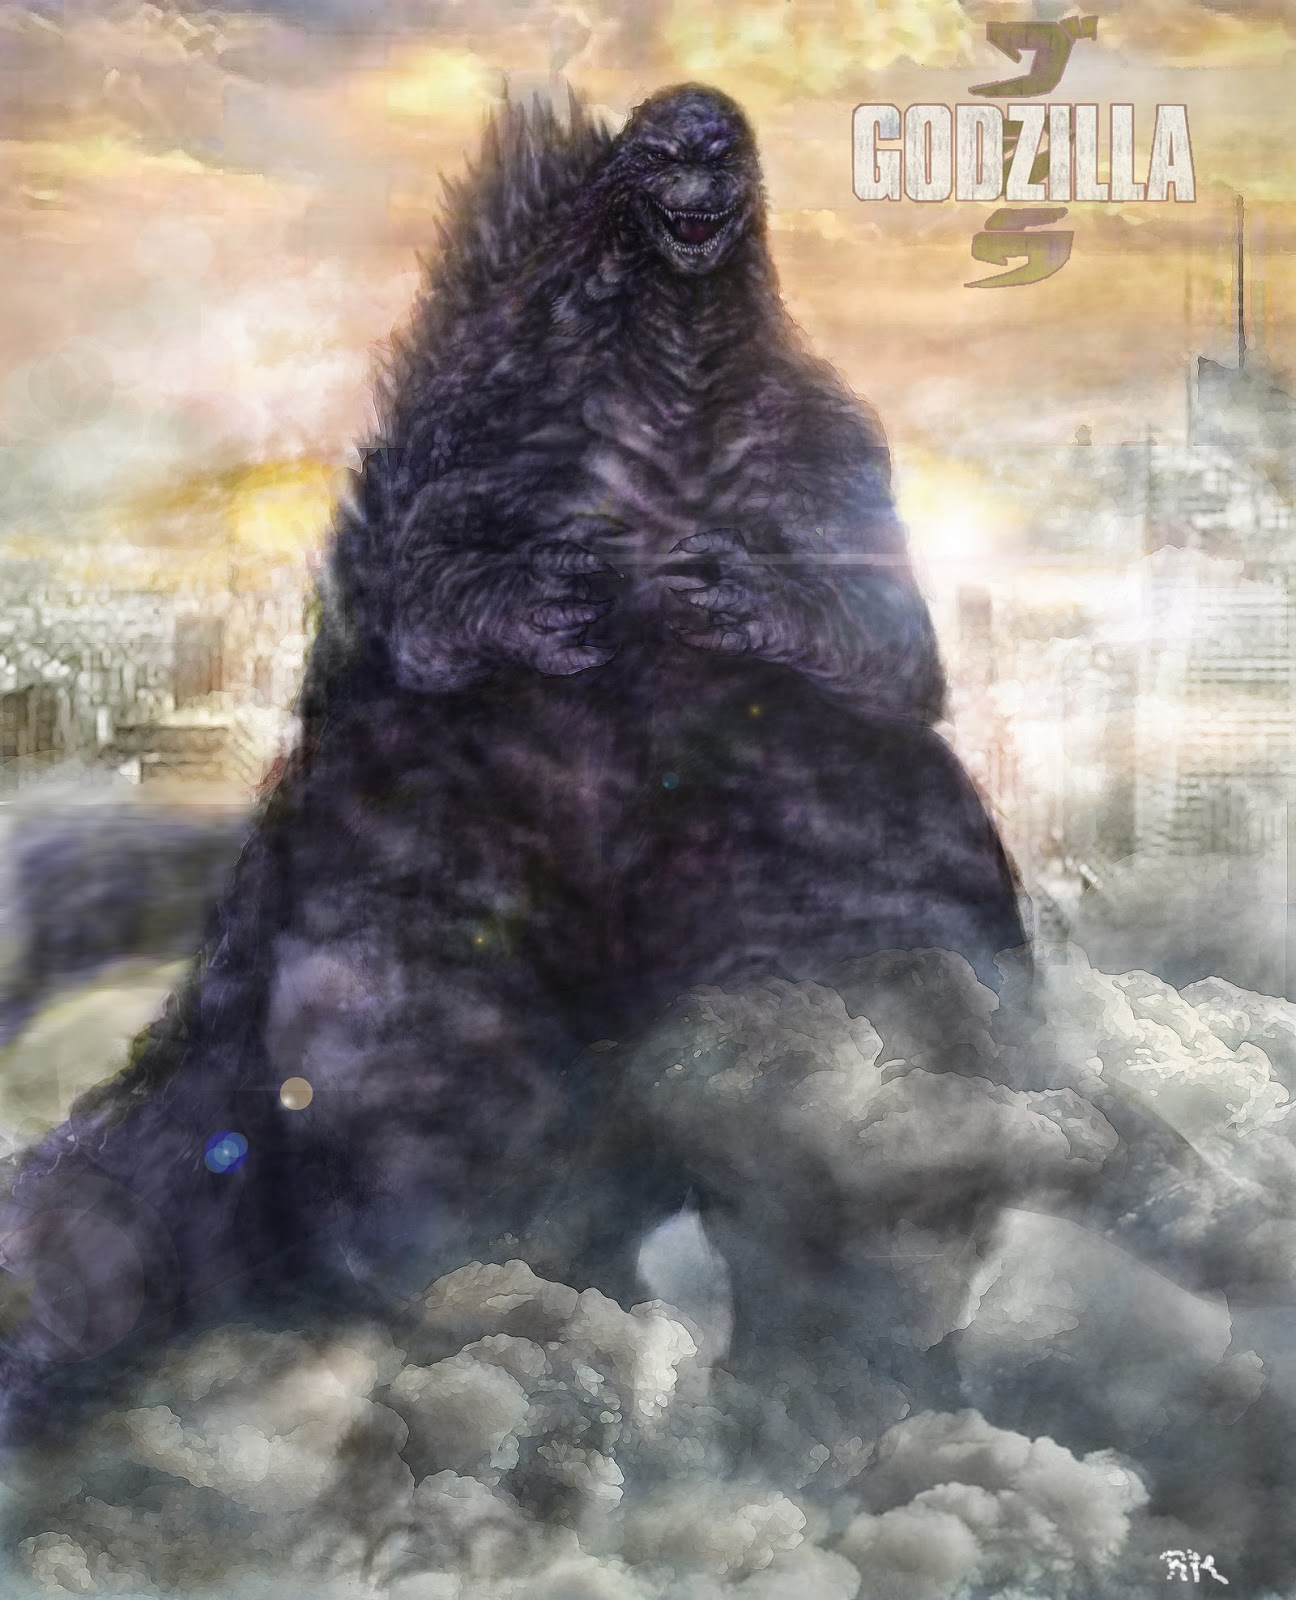 Godzilla Movie Story And A Brief Review